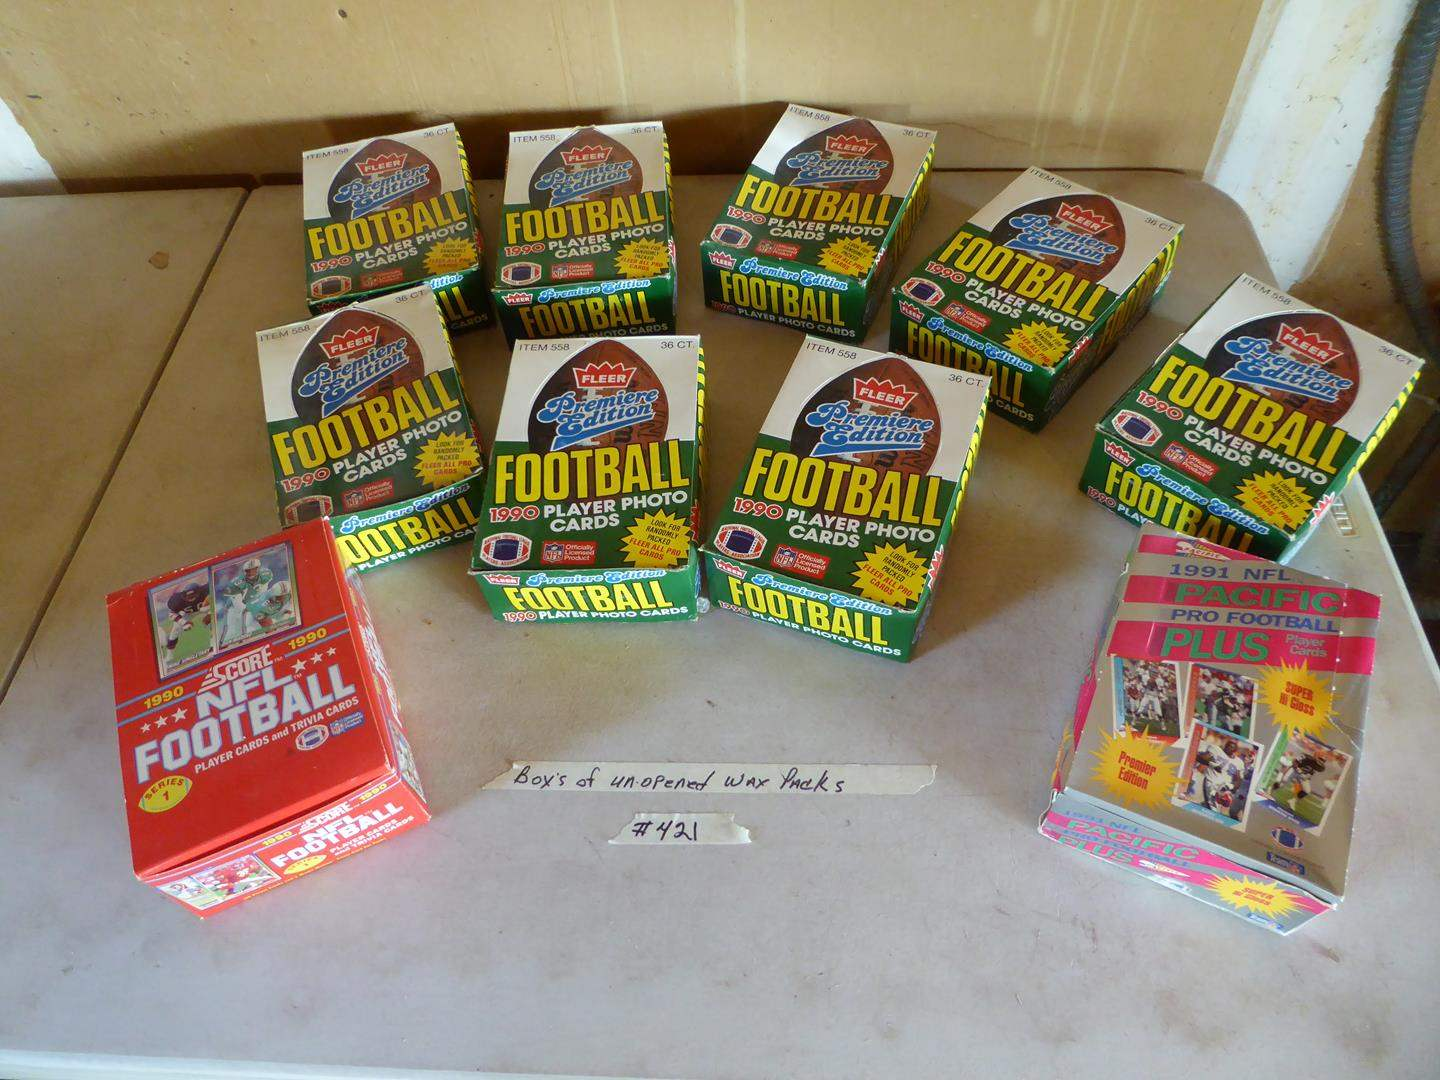 Lot # 421 - 10 Boxes NFL Football Cards Unopened Wax Packs 1990-1991 (main image)